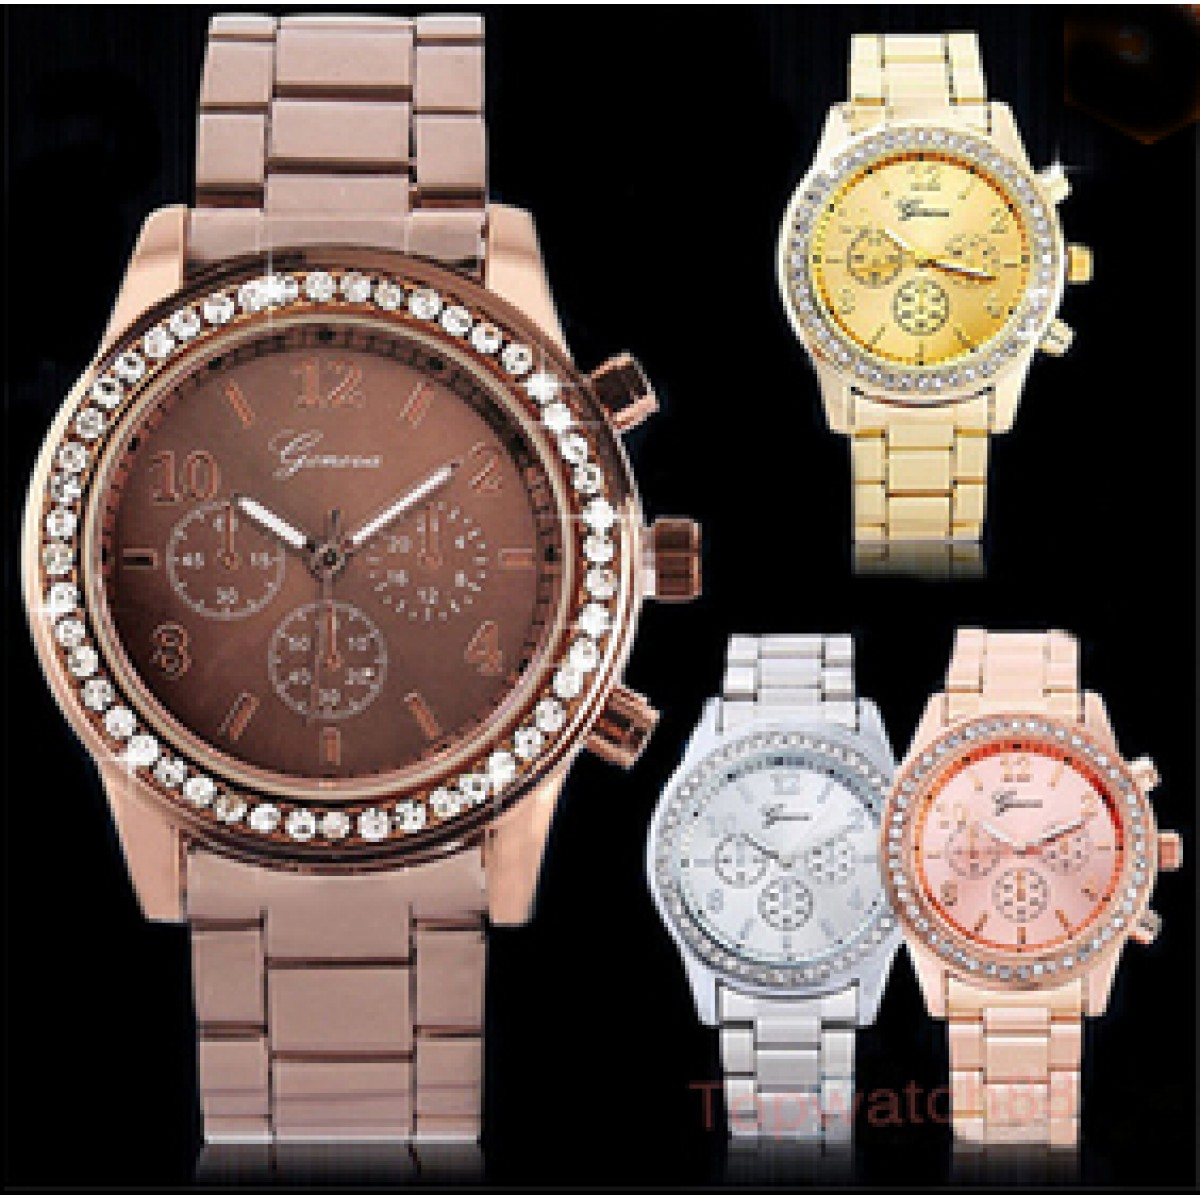 nordstrom the a day boyfriend watch fashionista tuesday of watches lifestyle trend